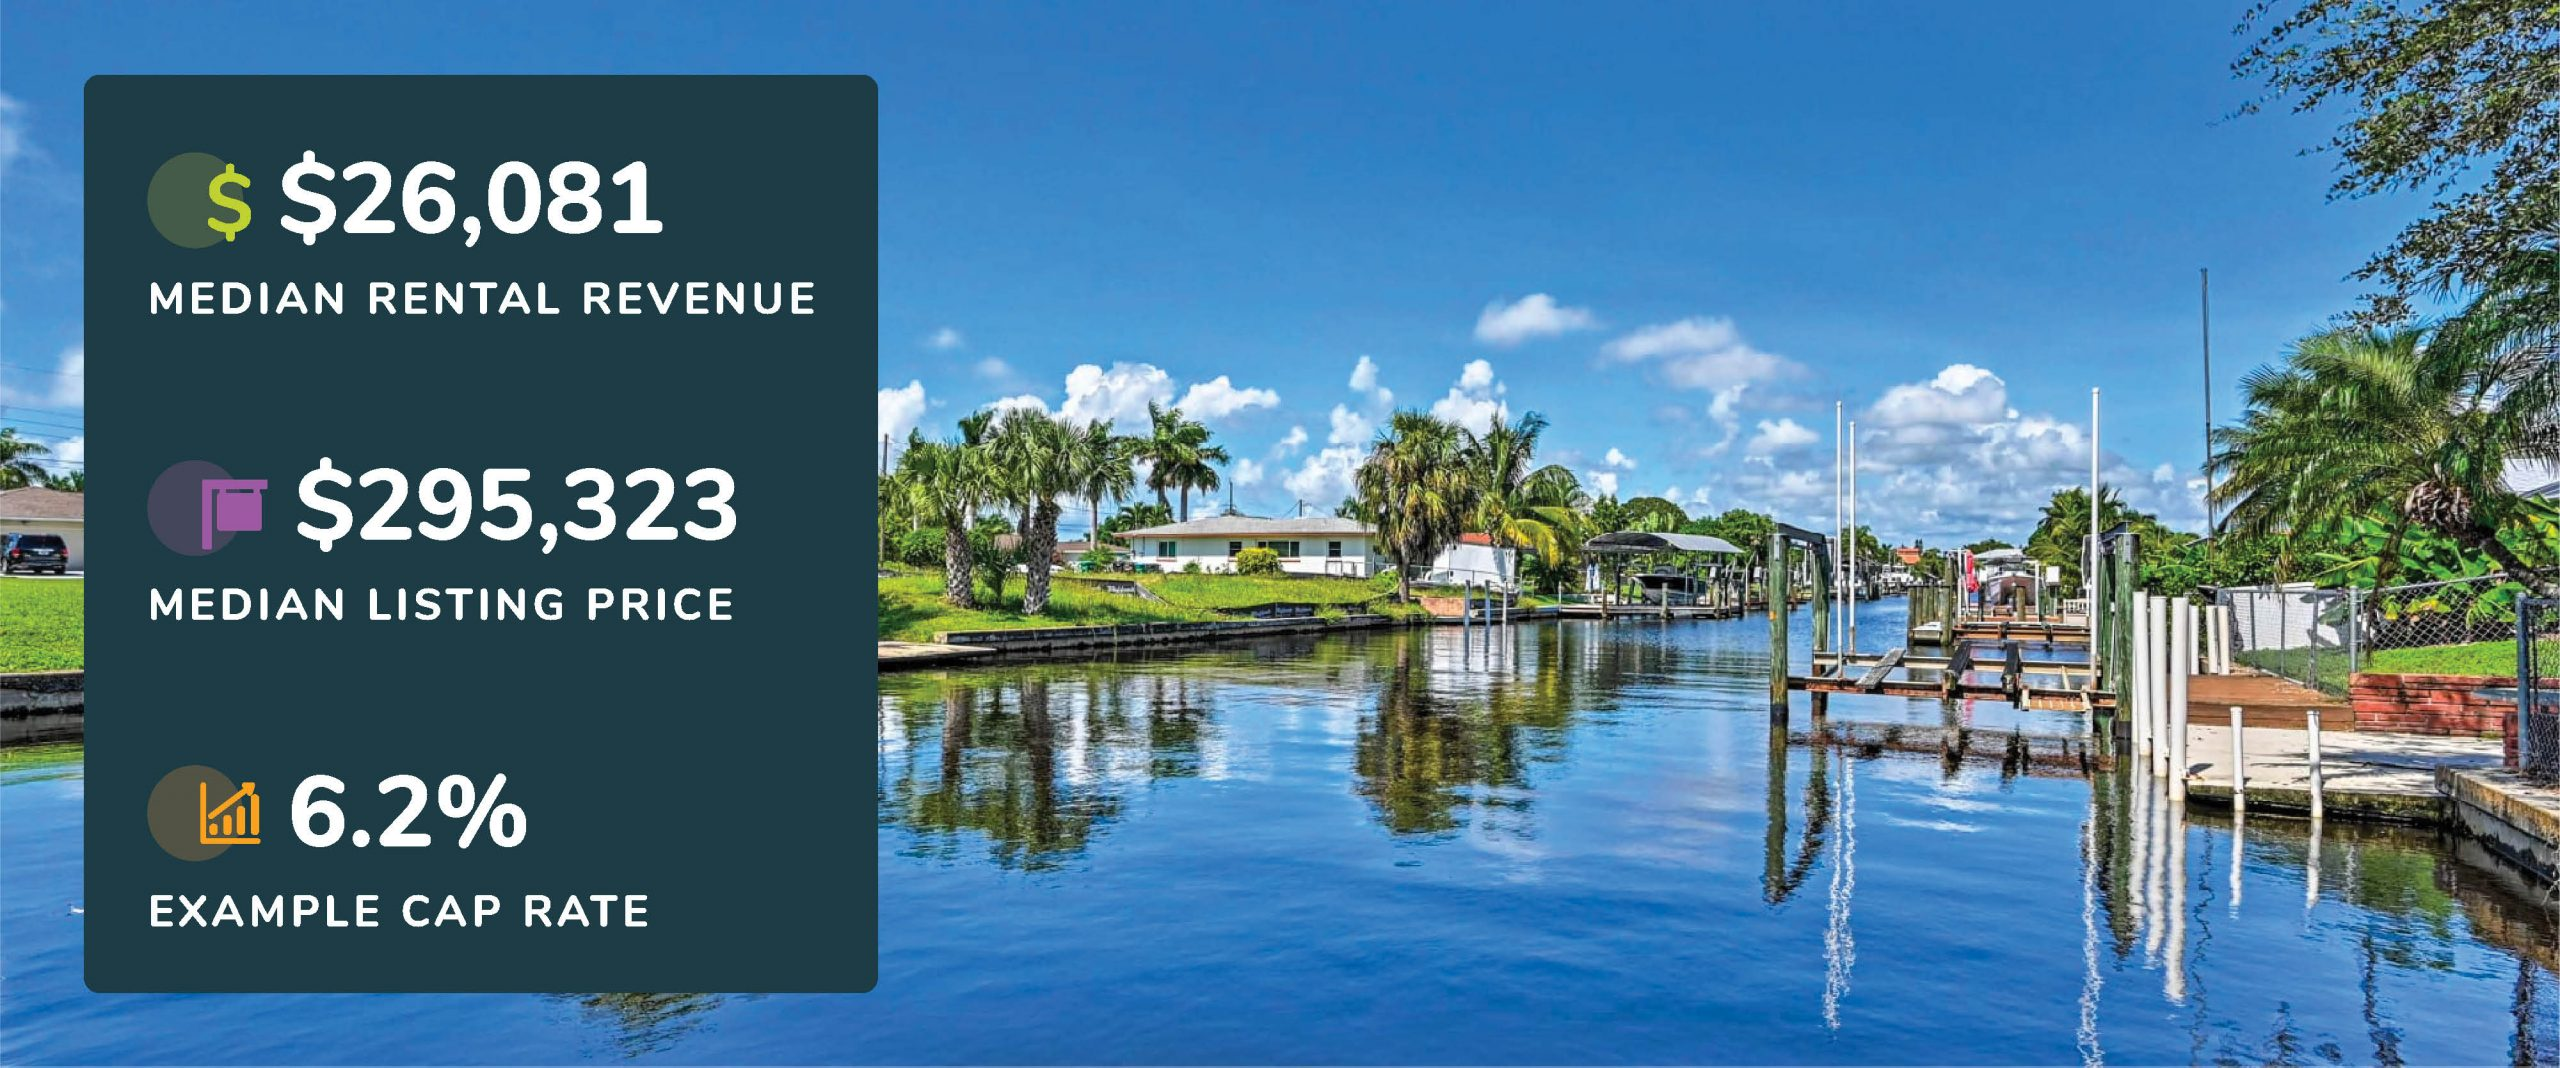 Graphic showing Cape Coral, Florida median rental revenue, listing price, and example cap rate with a picture of a waterfront view